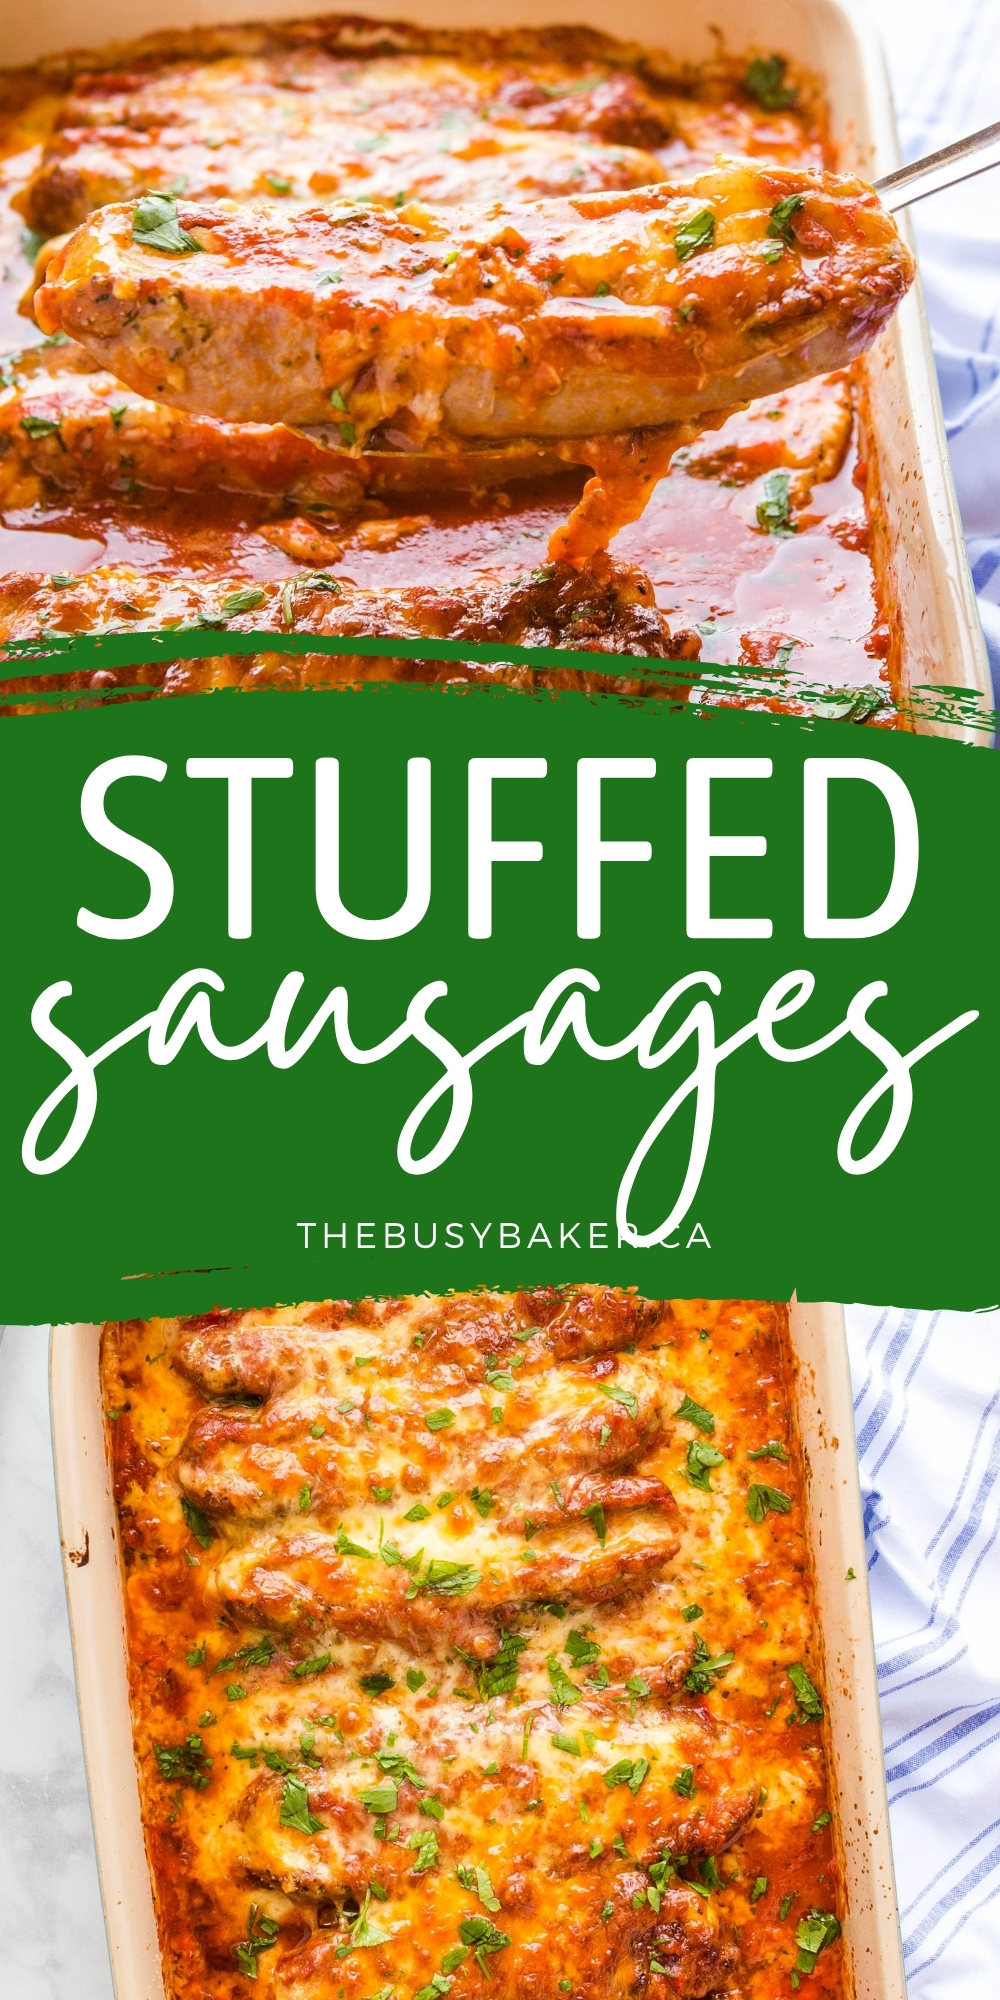 These Stuffed Sausages are packed with 2 kinds of cheese, flavourful spices, and topped with marinara sauce for the perfect low carb main dish! Recipe from thebusybaker.ca! #stuffedsausages #lowcarb #keto #maindish #sausages #cheese #mealidea #ketomeal via @busybakerblog